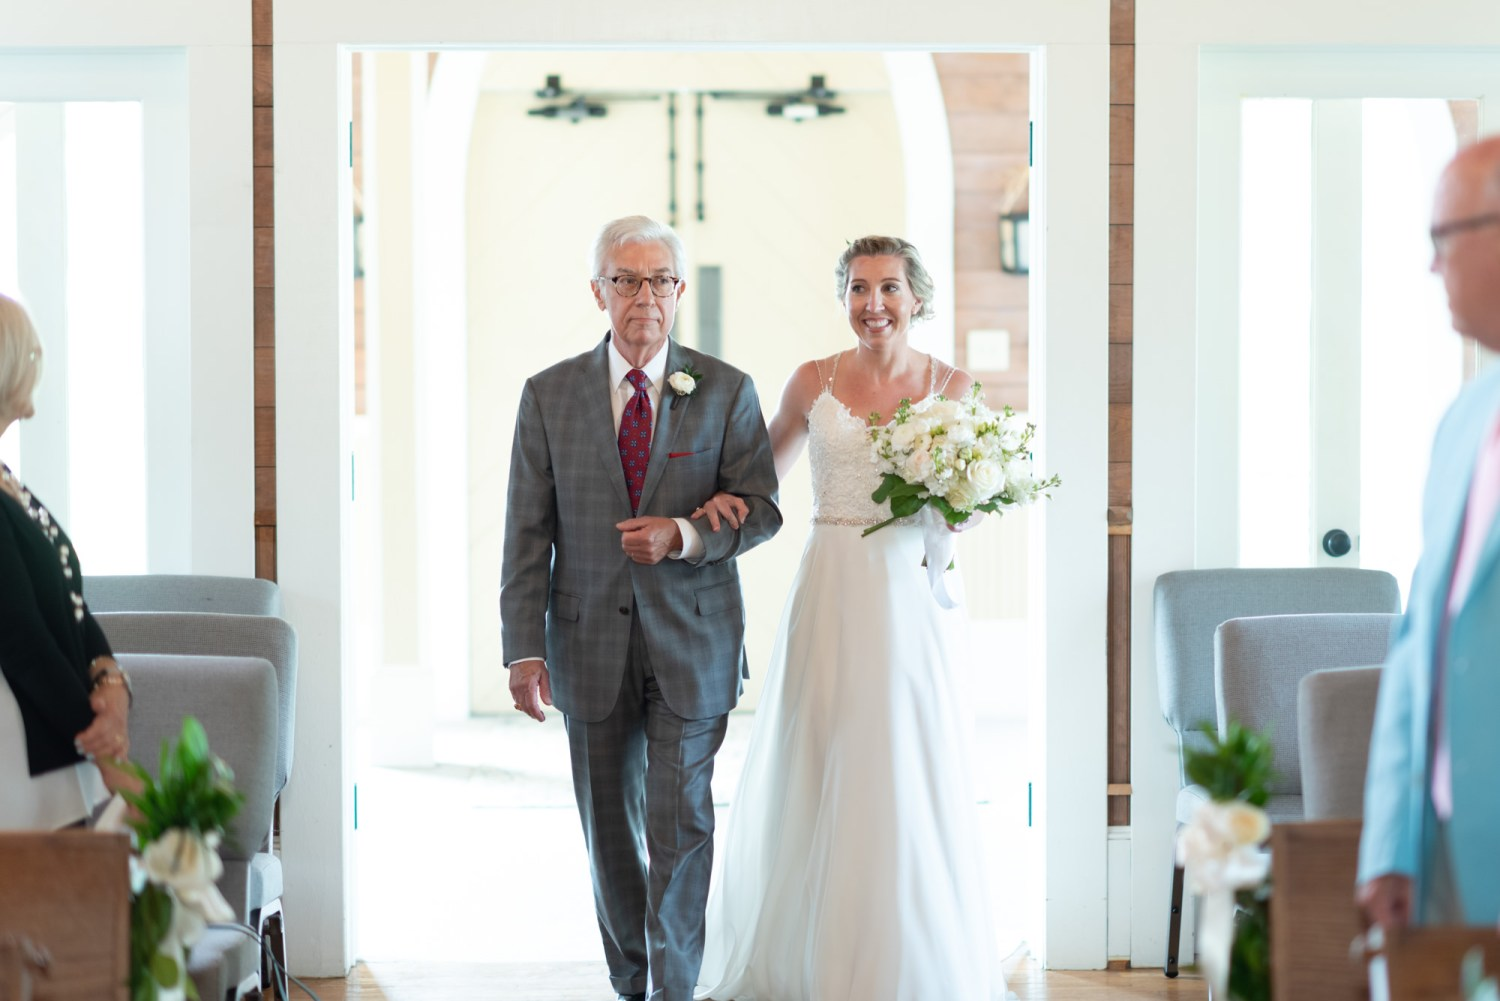 Bride and father walking down the isle - Pawleys Island Community Chapel